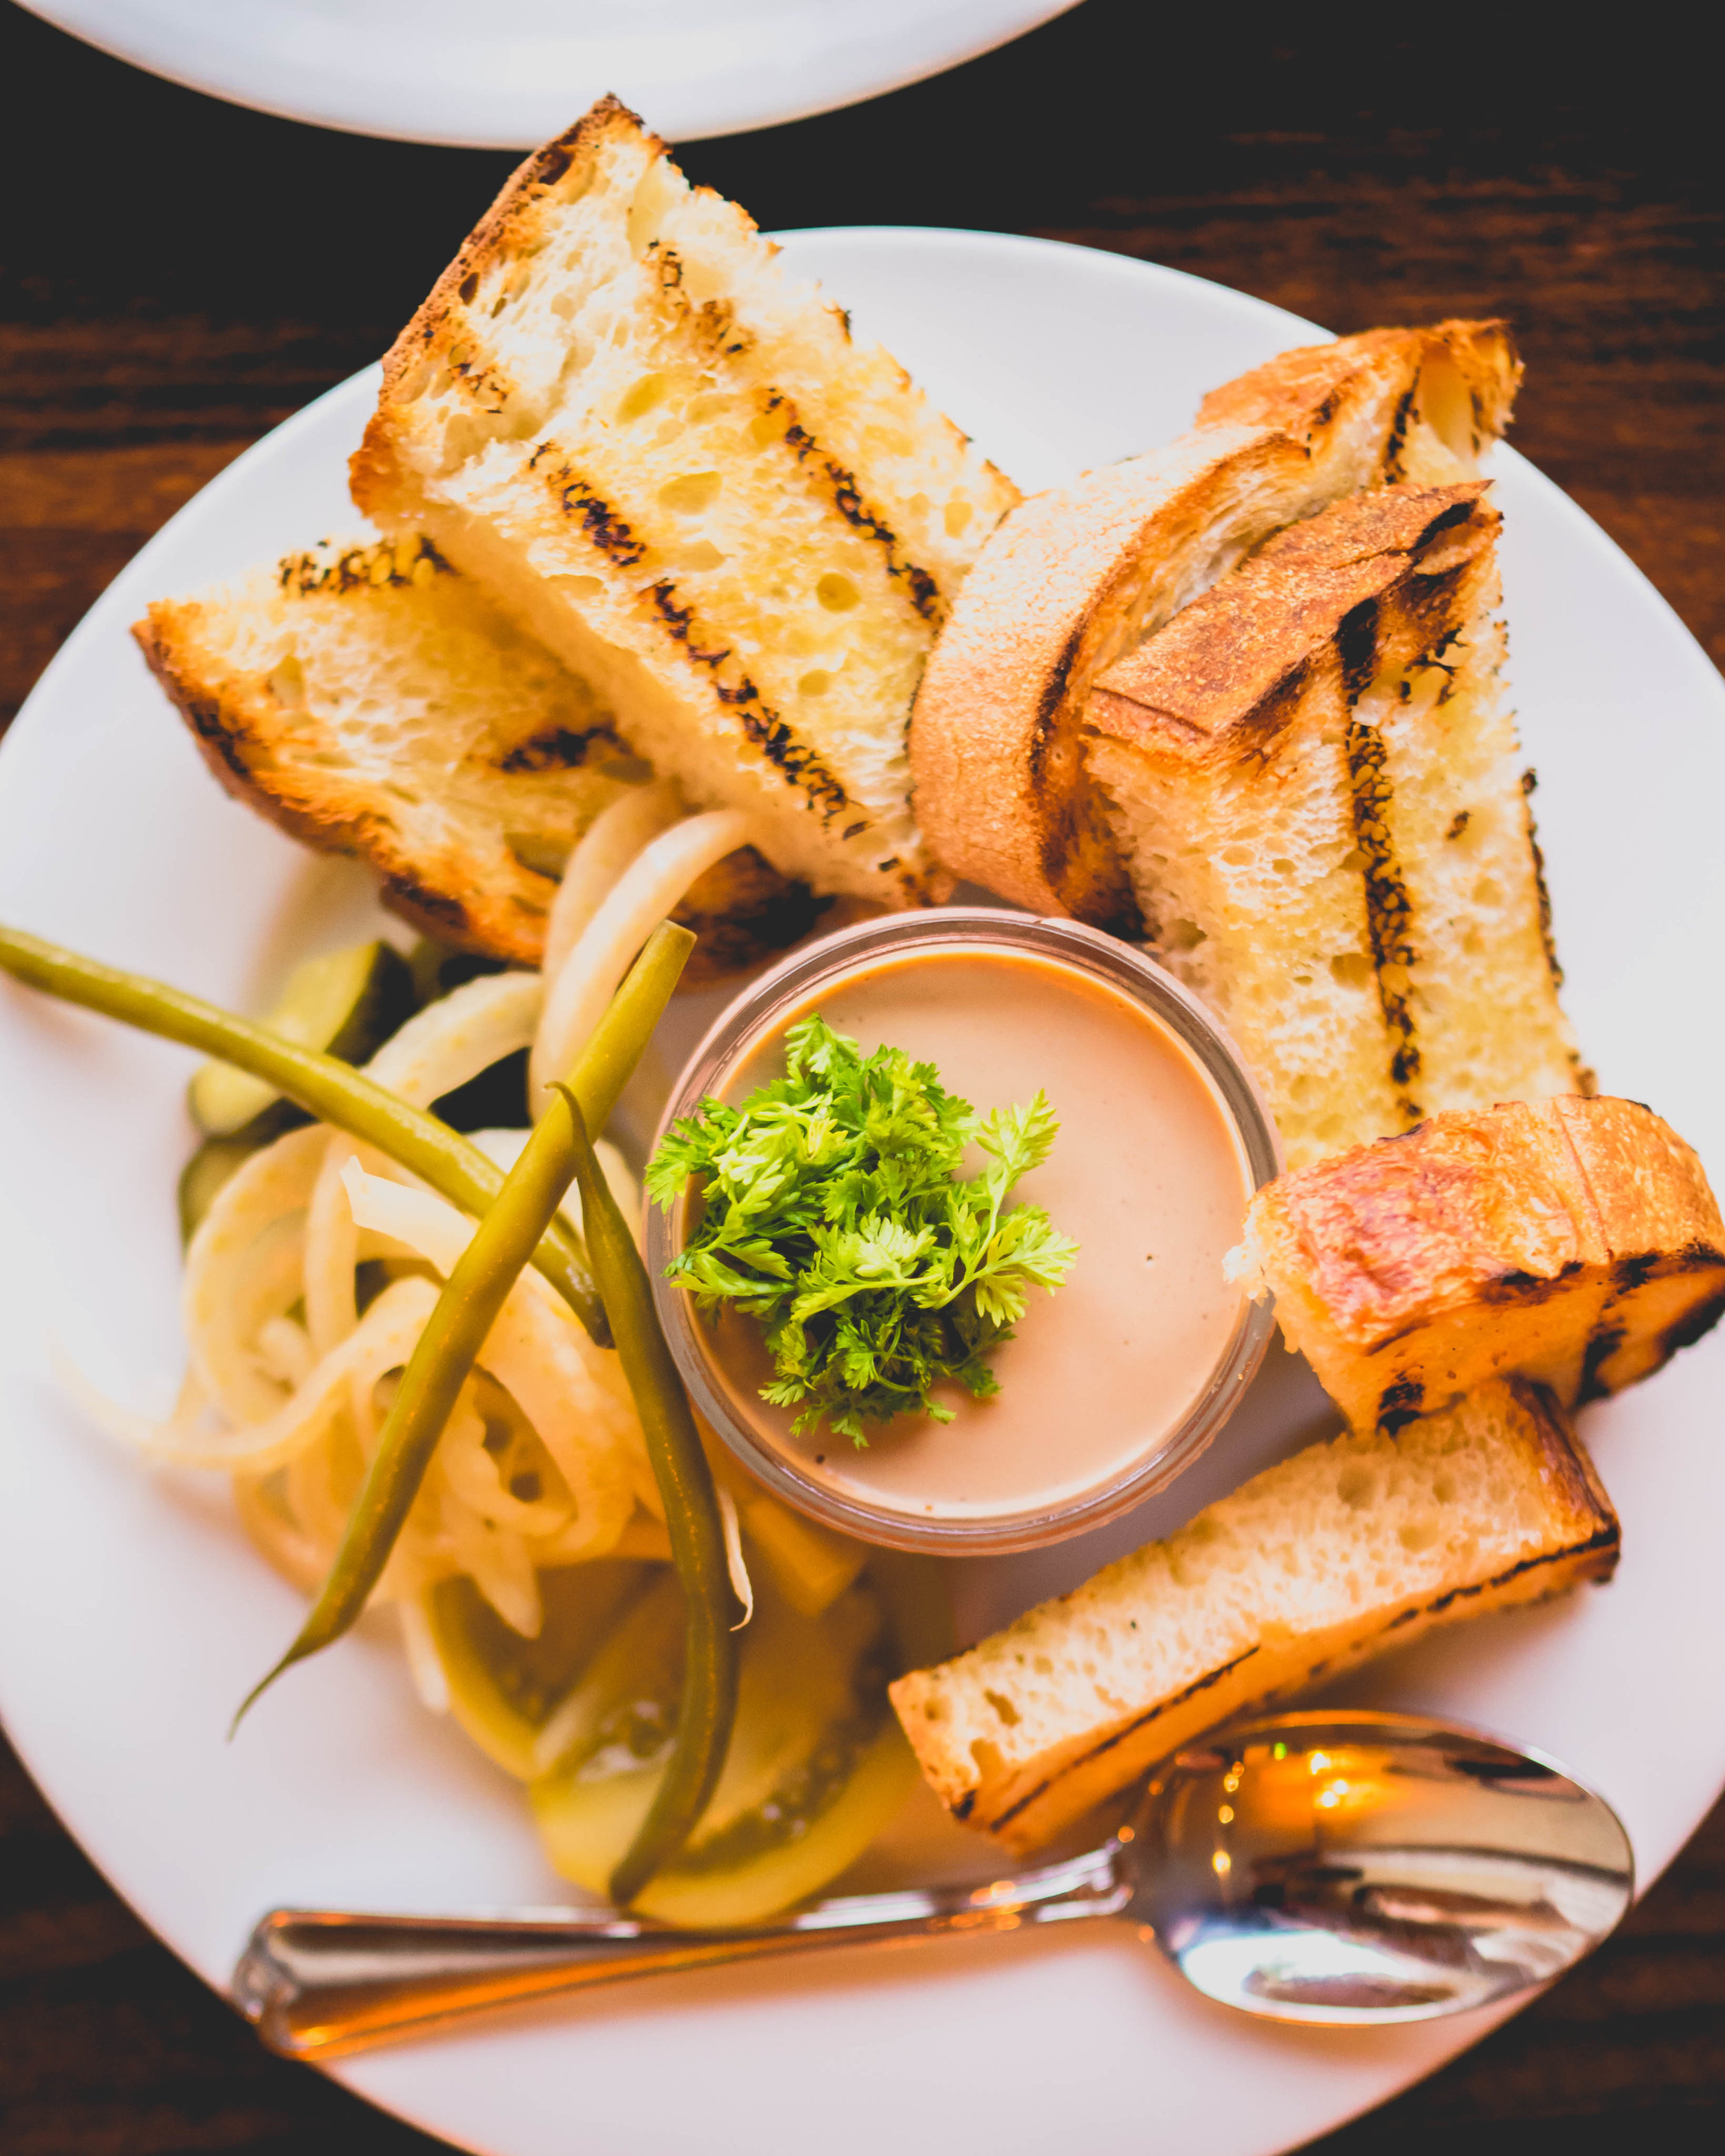 pate : chicken liver pate, grilled bread, house pickles, herbs.